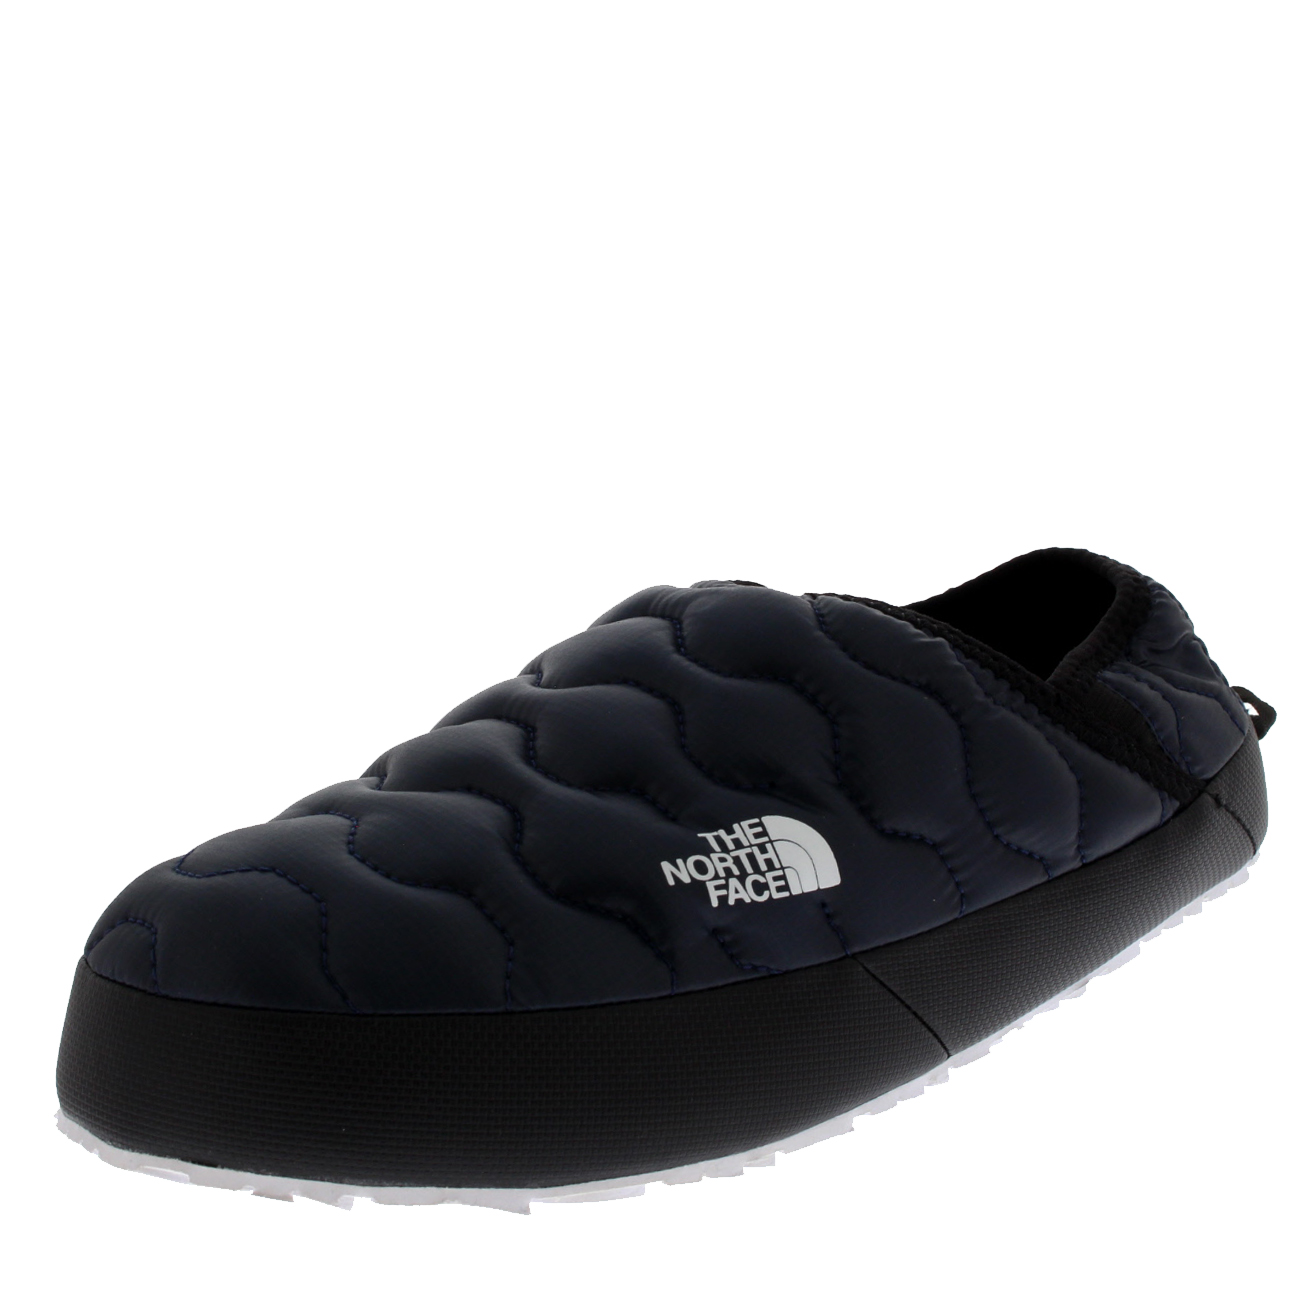 264a950fe4b Mens The North Face Thermoball Traction Mule IV Water Resistant Slippers US  8-13